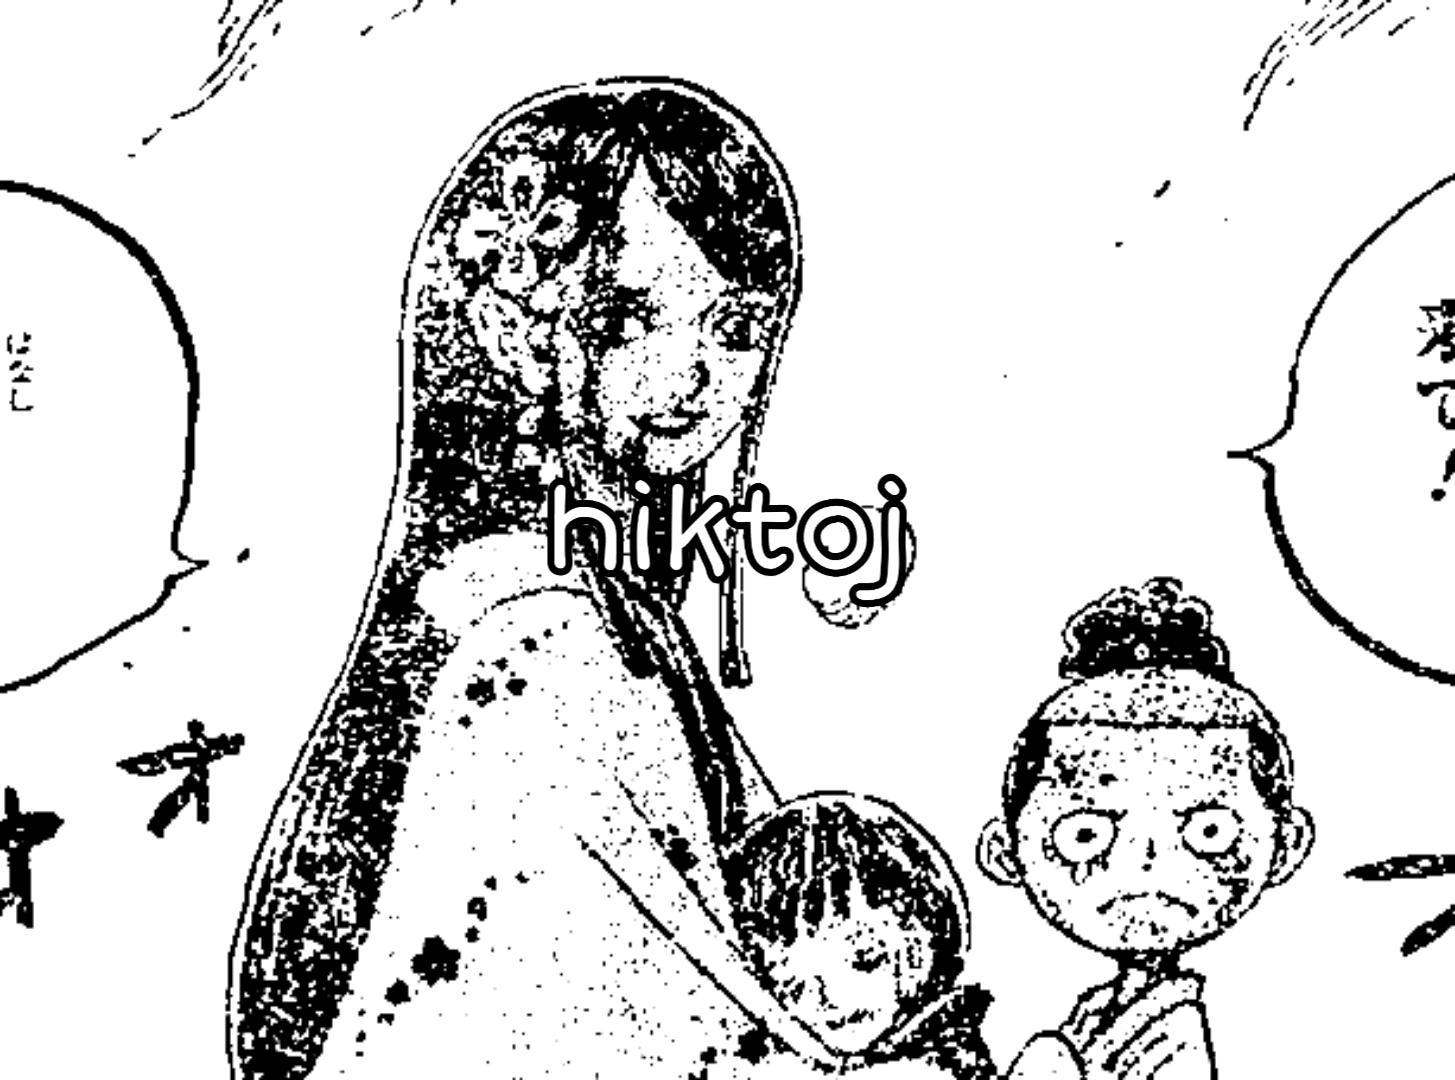 One Piece Spoilers 973 07